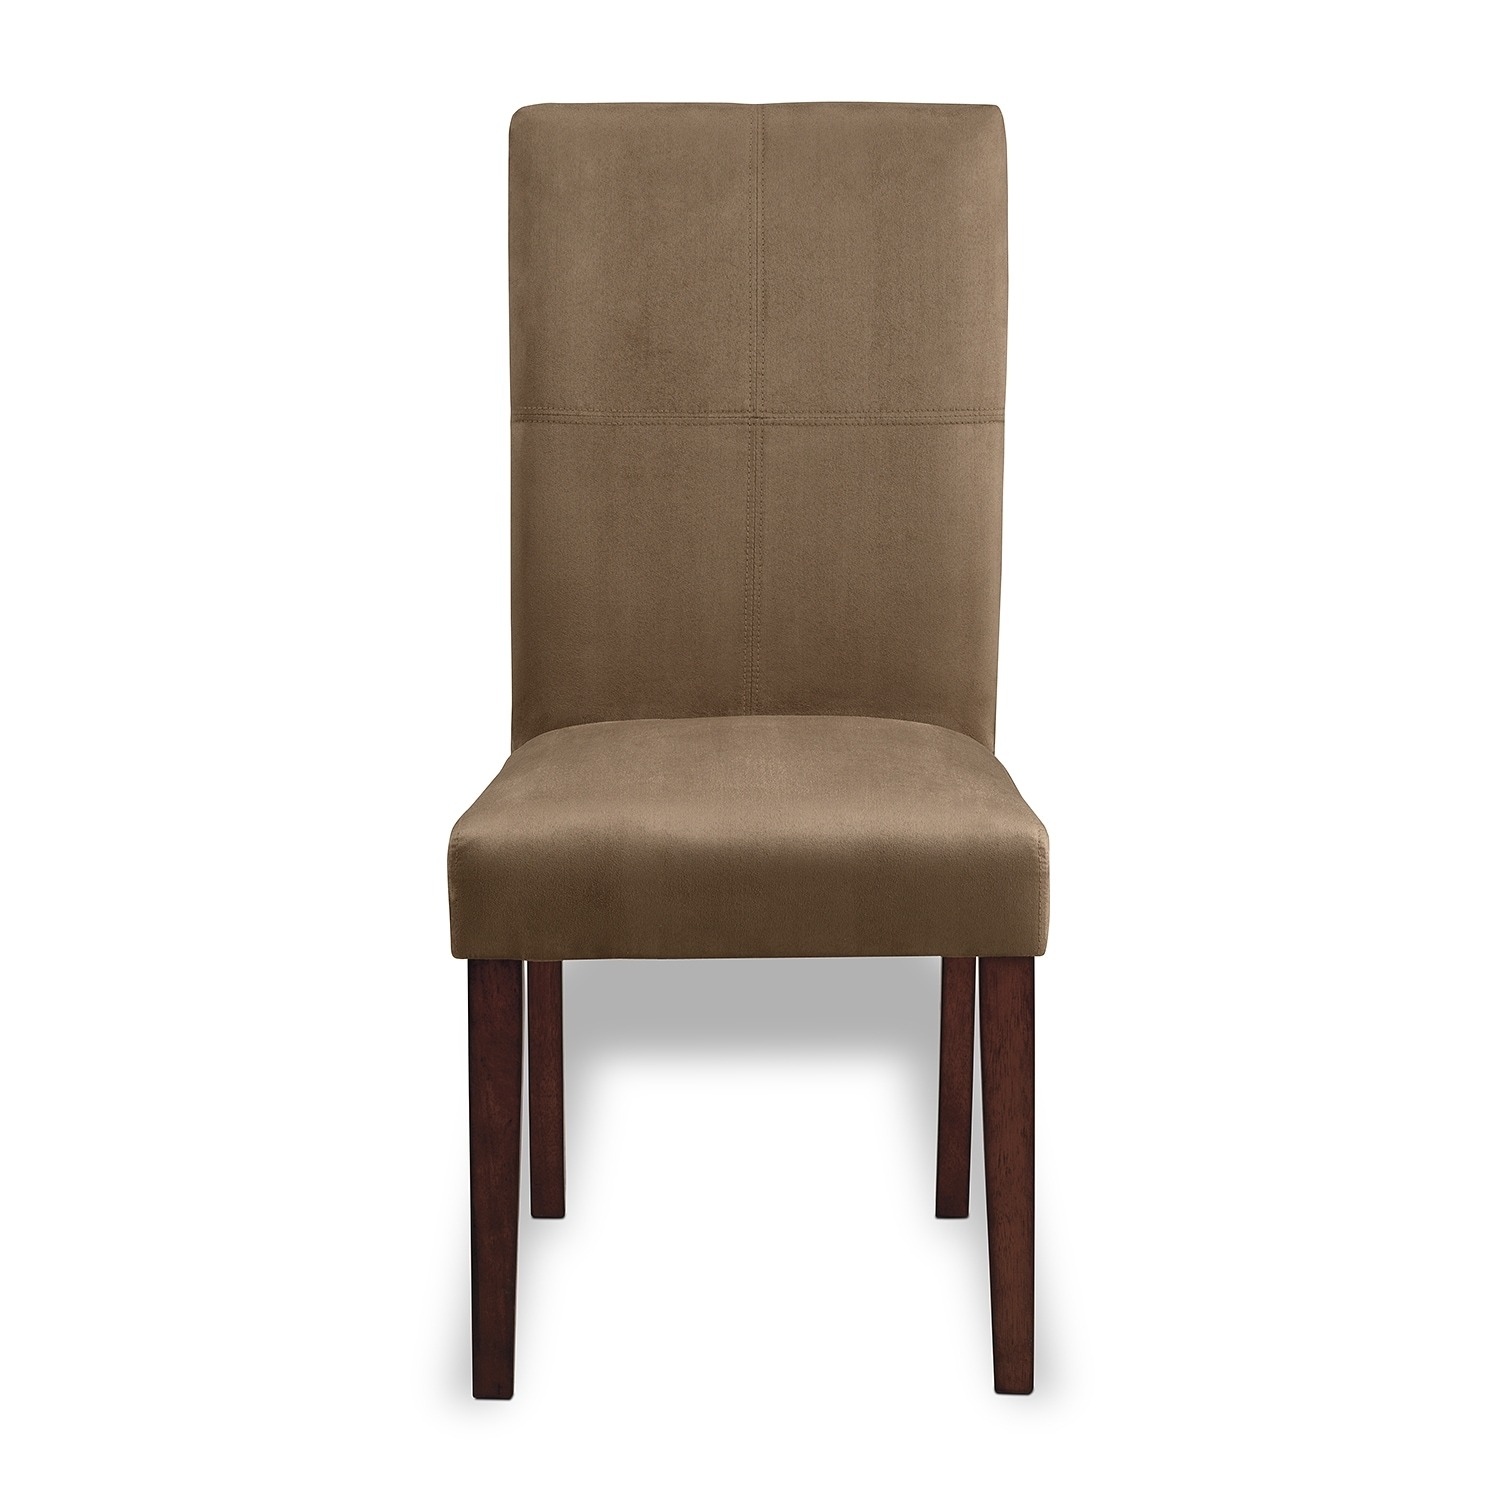 Cornerstone Dining Room Chair Value City Furniture : 274960 from valuecity.com size 1500 x 1500 jpeg 168kB